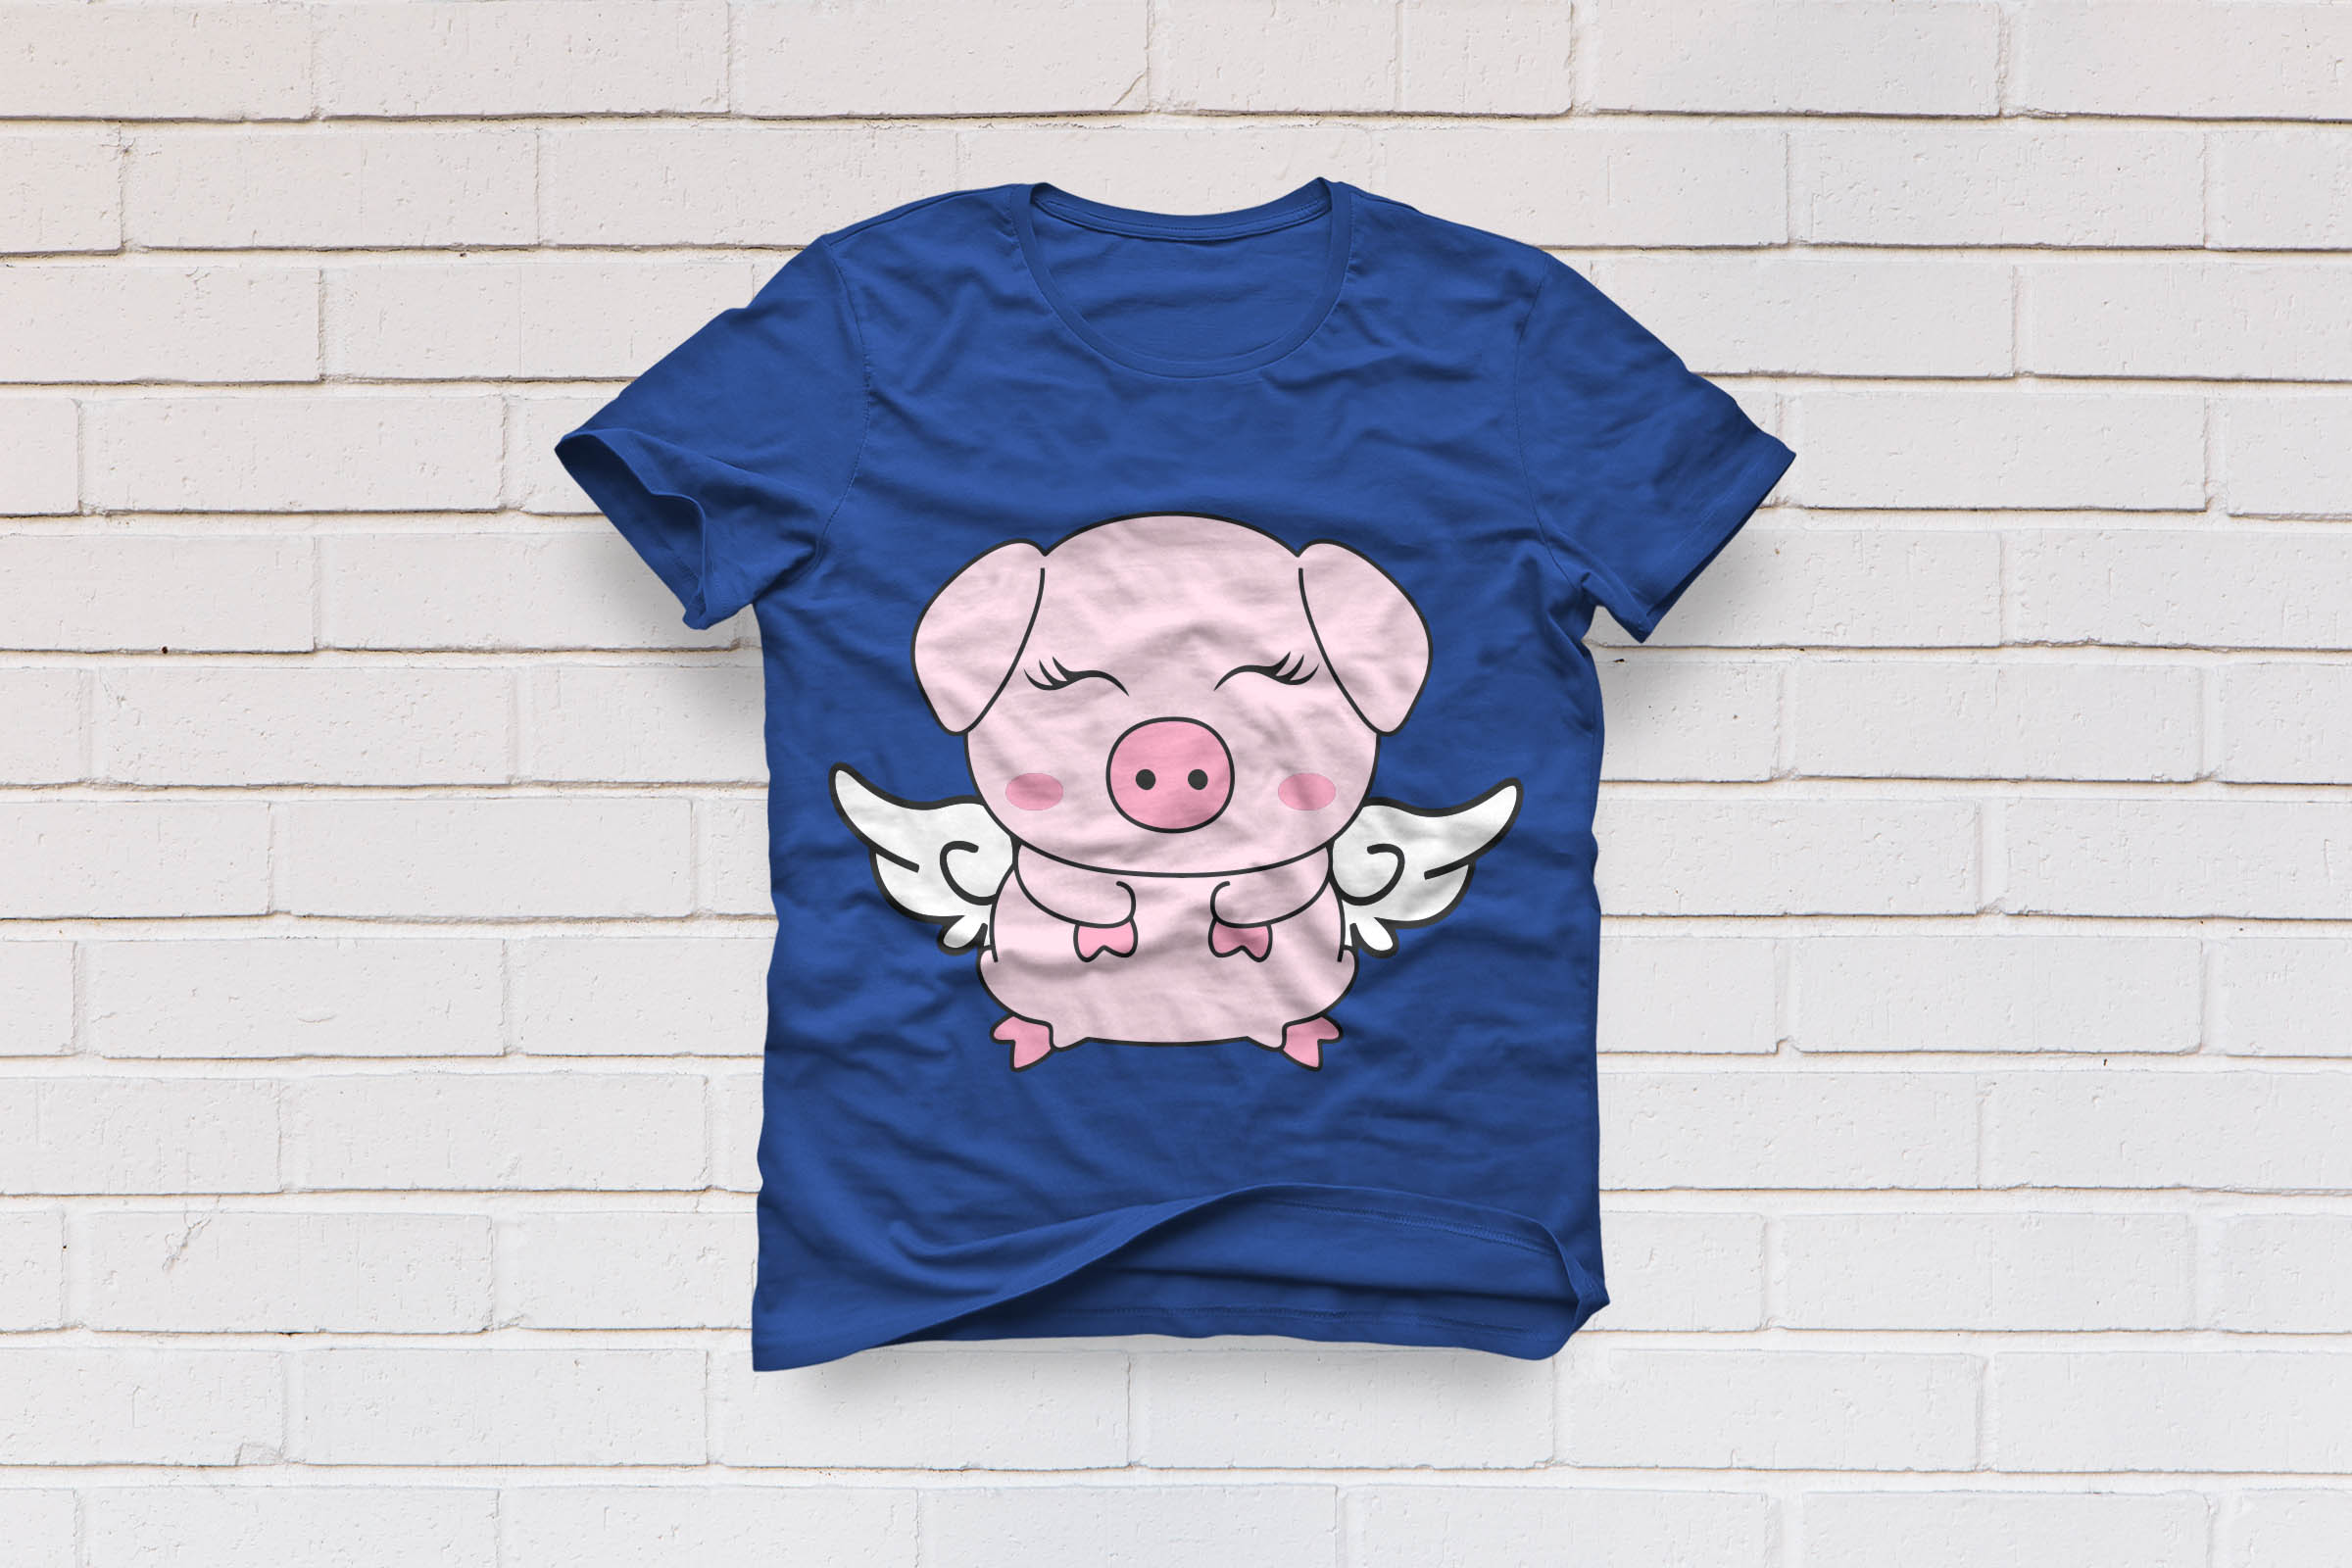 Show Pig With Wings Kids Eyelashes By S Design Bundles